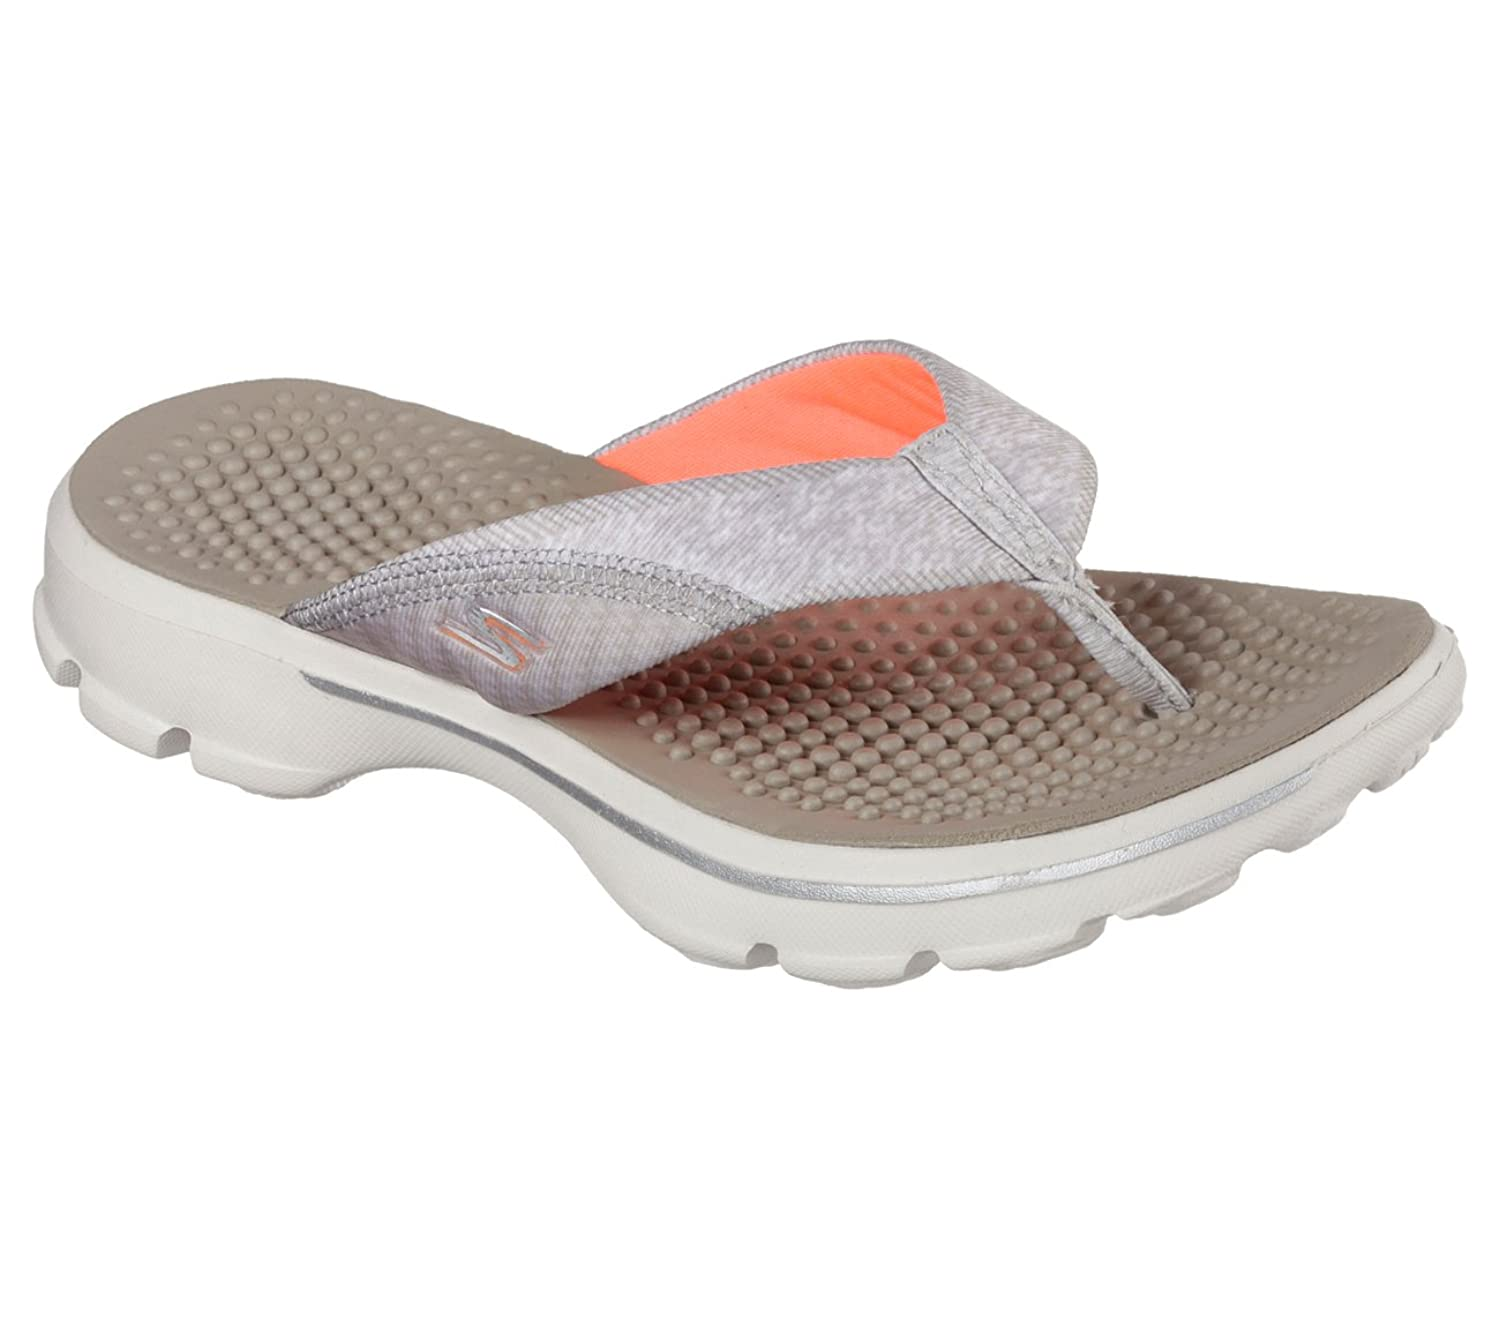 skechers yoga mat shoes. skechers performance womens go walk pizazz flip flop: amazon.ca: shoes \u0026 handbags yoga mat b